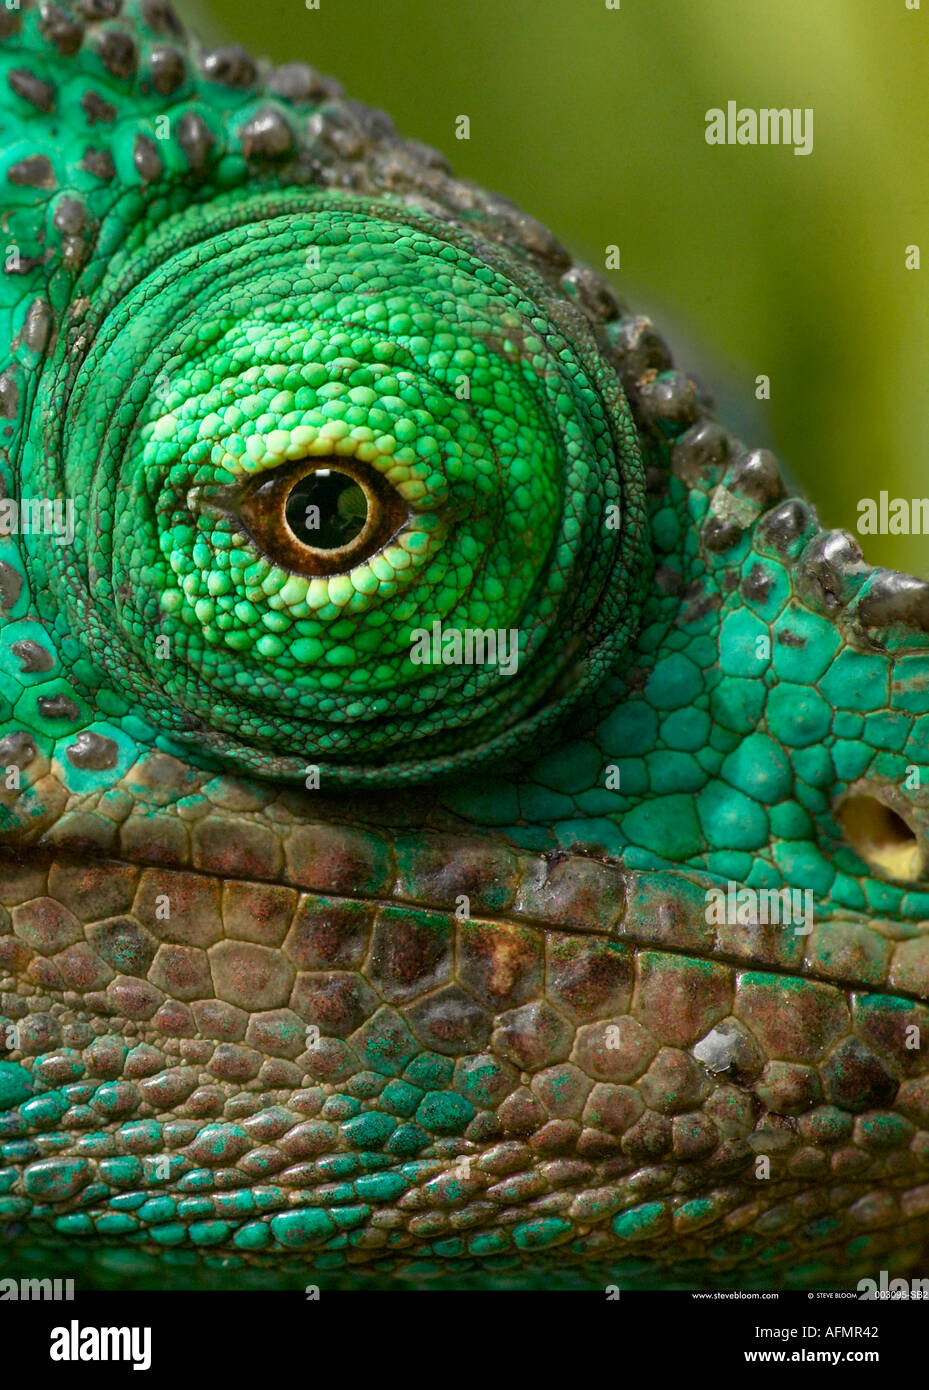 Close up di un occhio di un Parson s chameleon Perinet Madagascar Immagini Stock